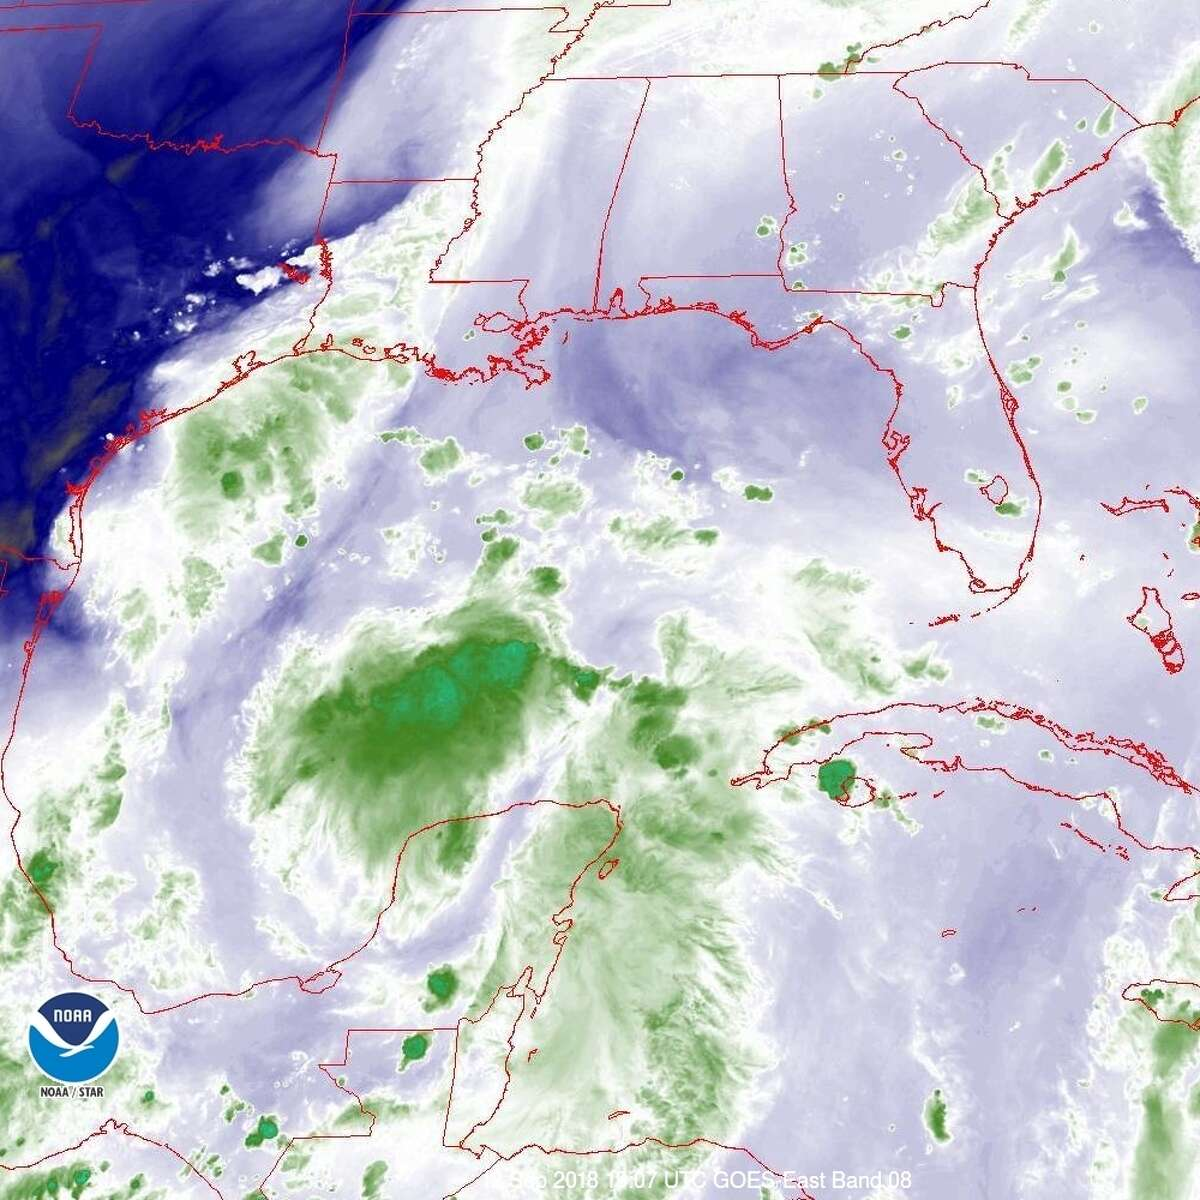 PHOTOS: Invest 95L in photos These images show Invest 95L as it appeared on Wednesday in satellite images. (9/12/18) >>>See more photos of this probable storm heading towards the Texas coast...